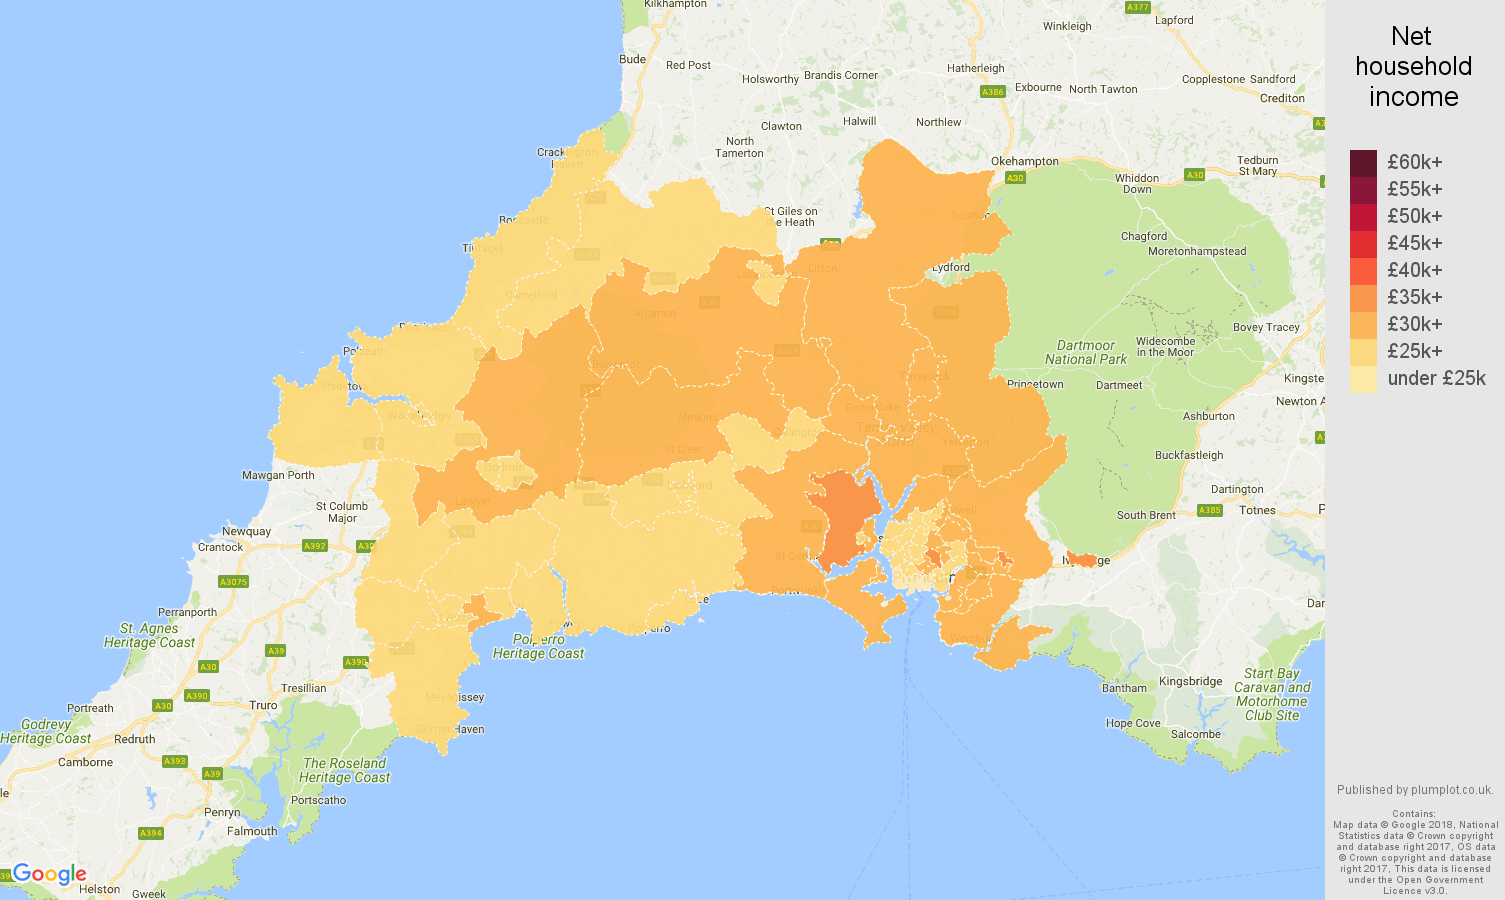 Plymouth net household income map